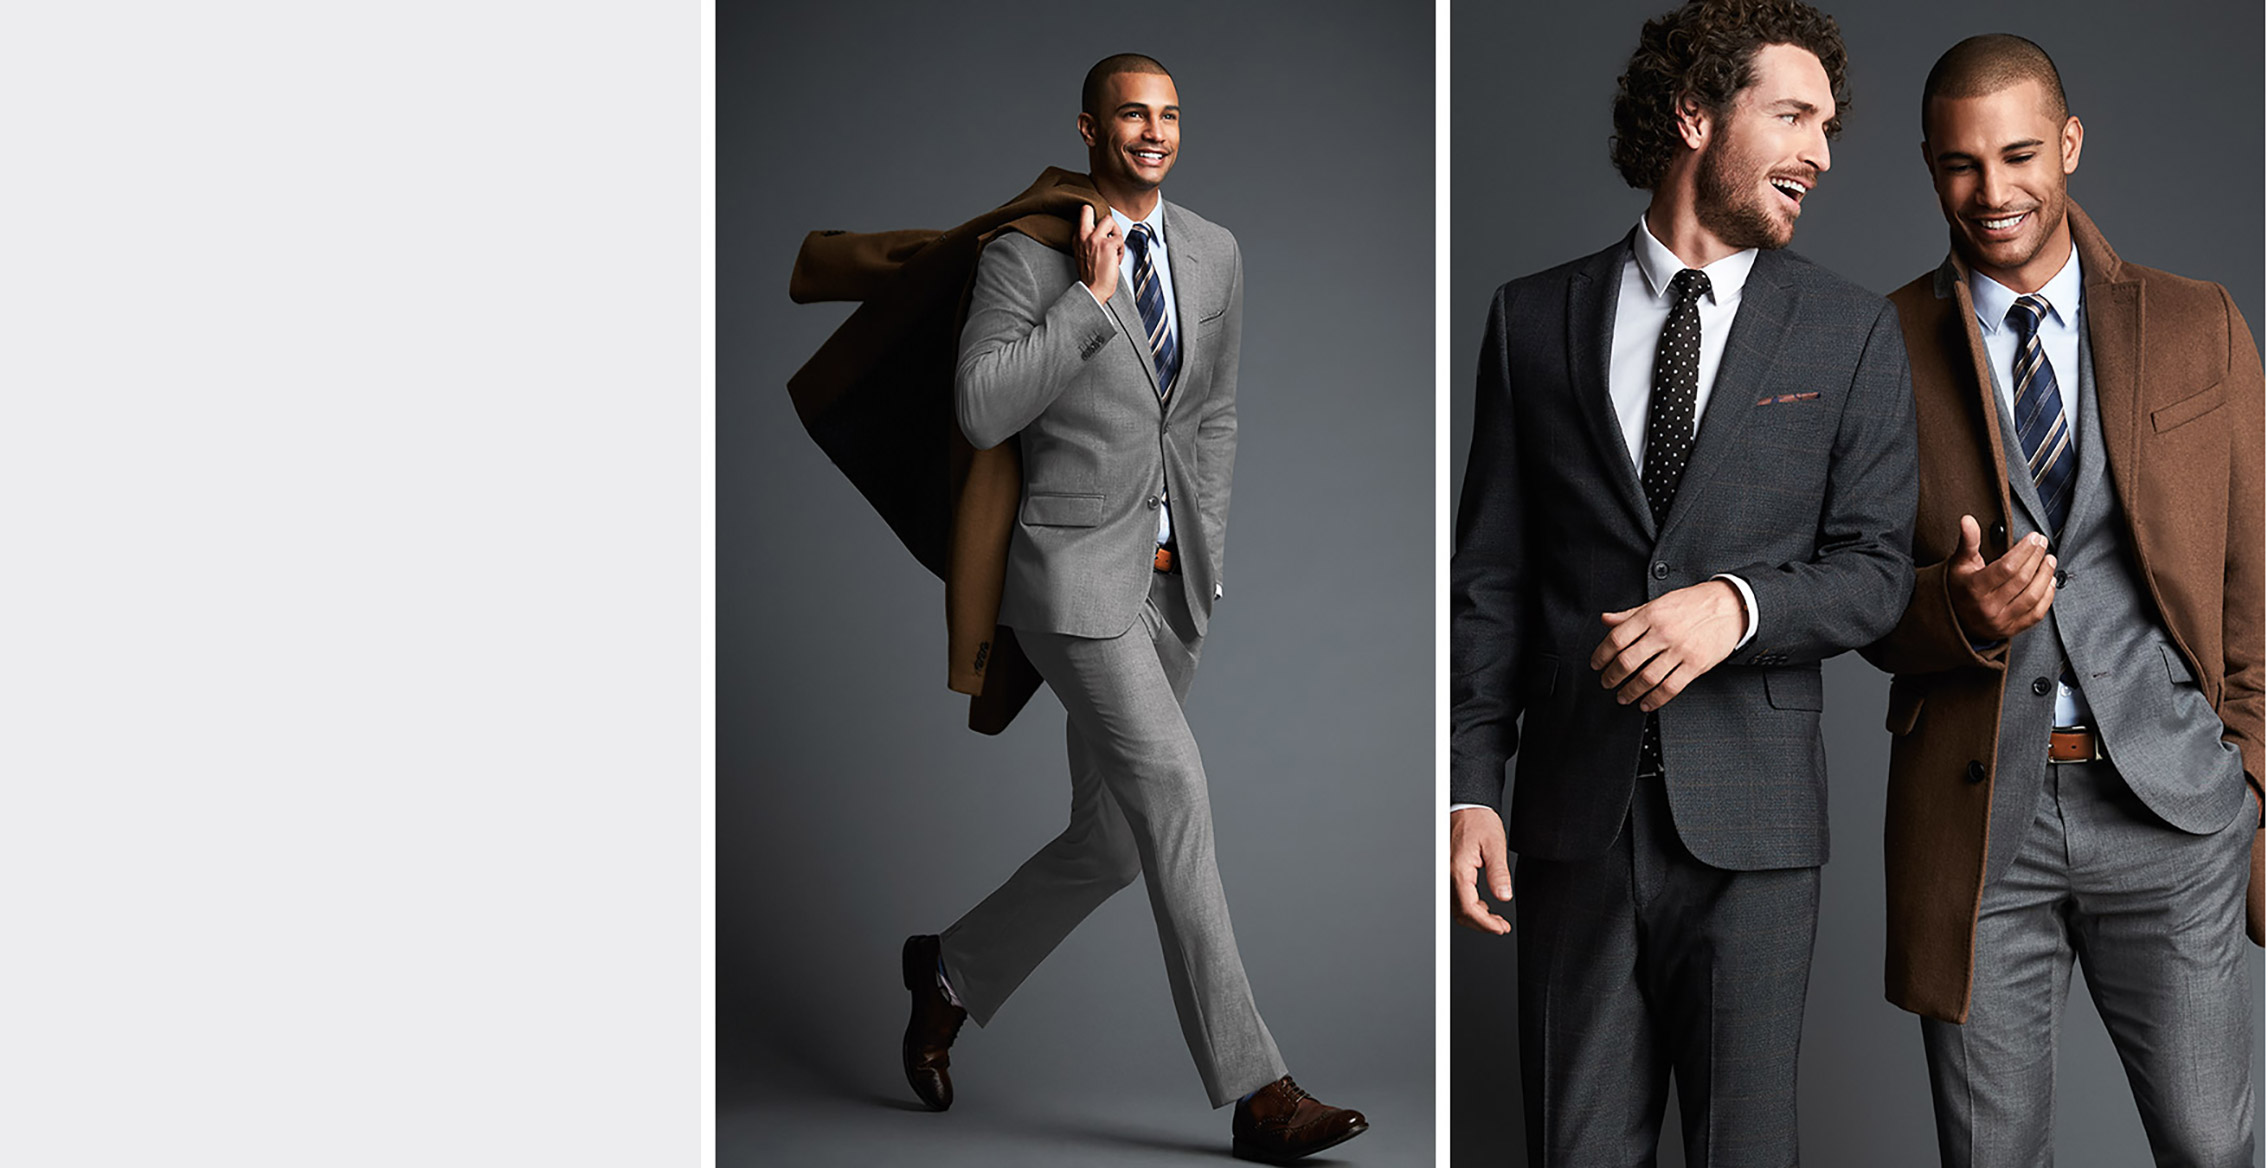 New in September - Blazers & made to move suits for this fall.